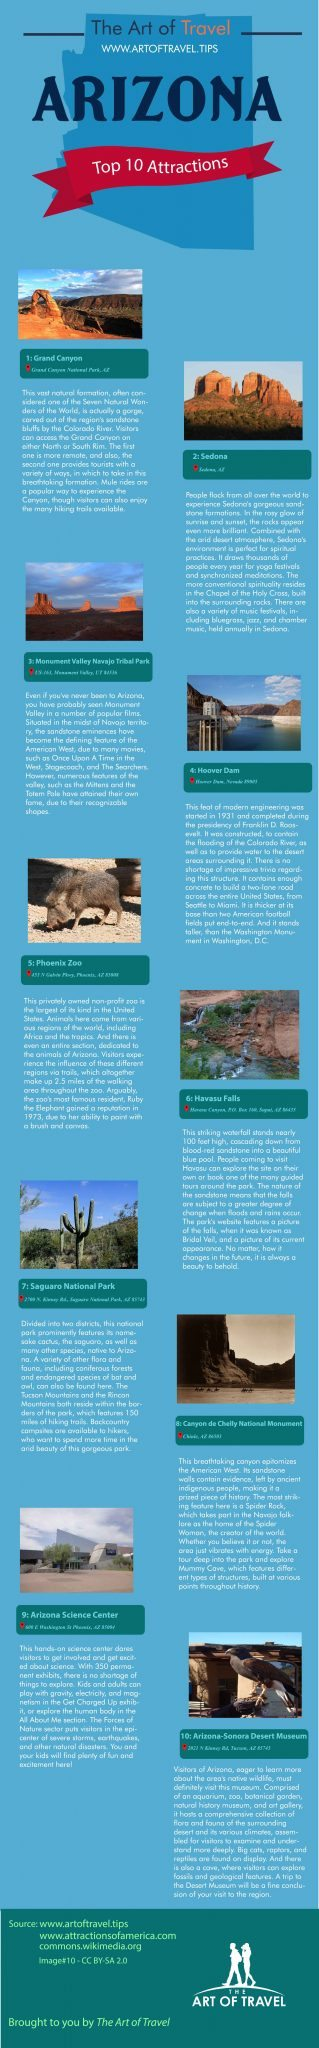 Infographic Things to do in Arizona